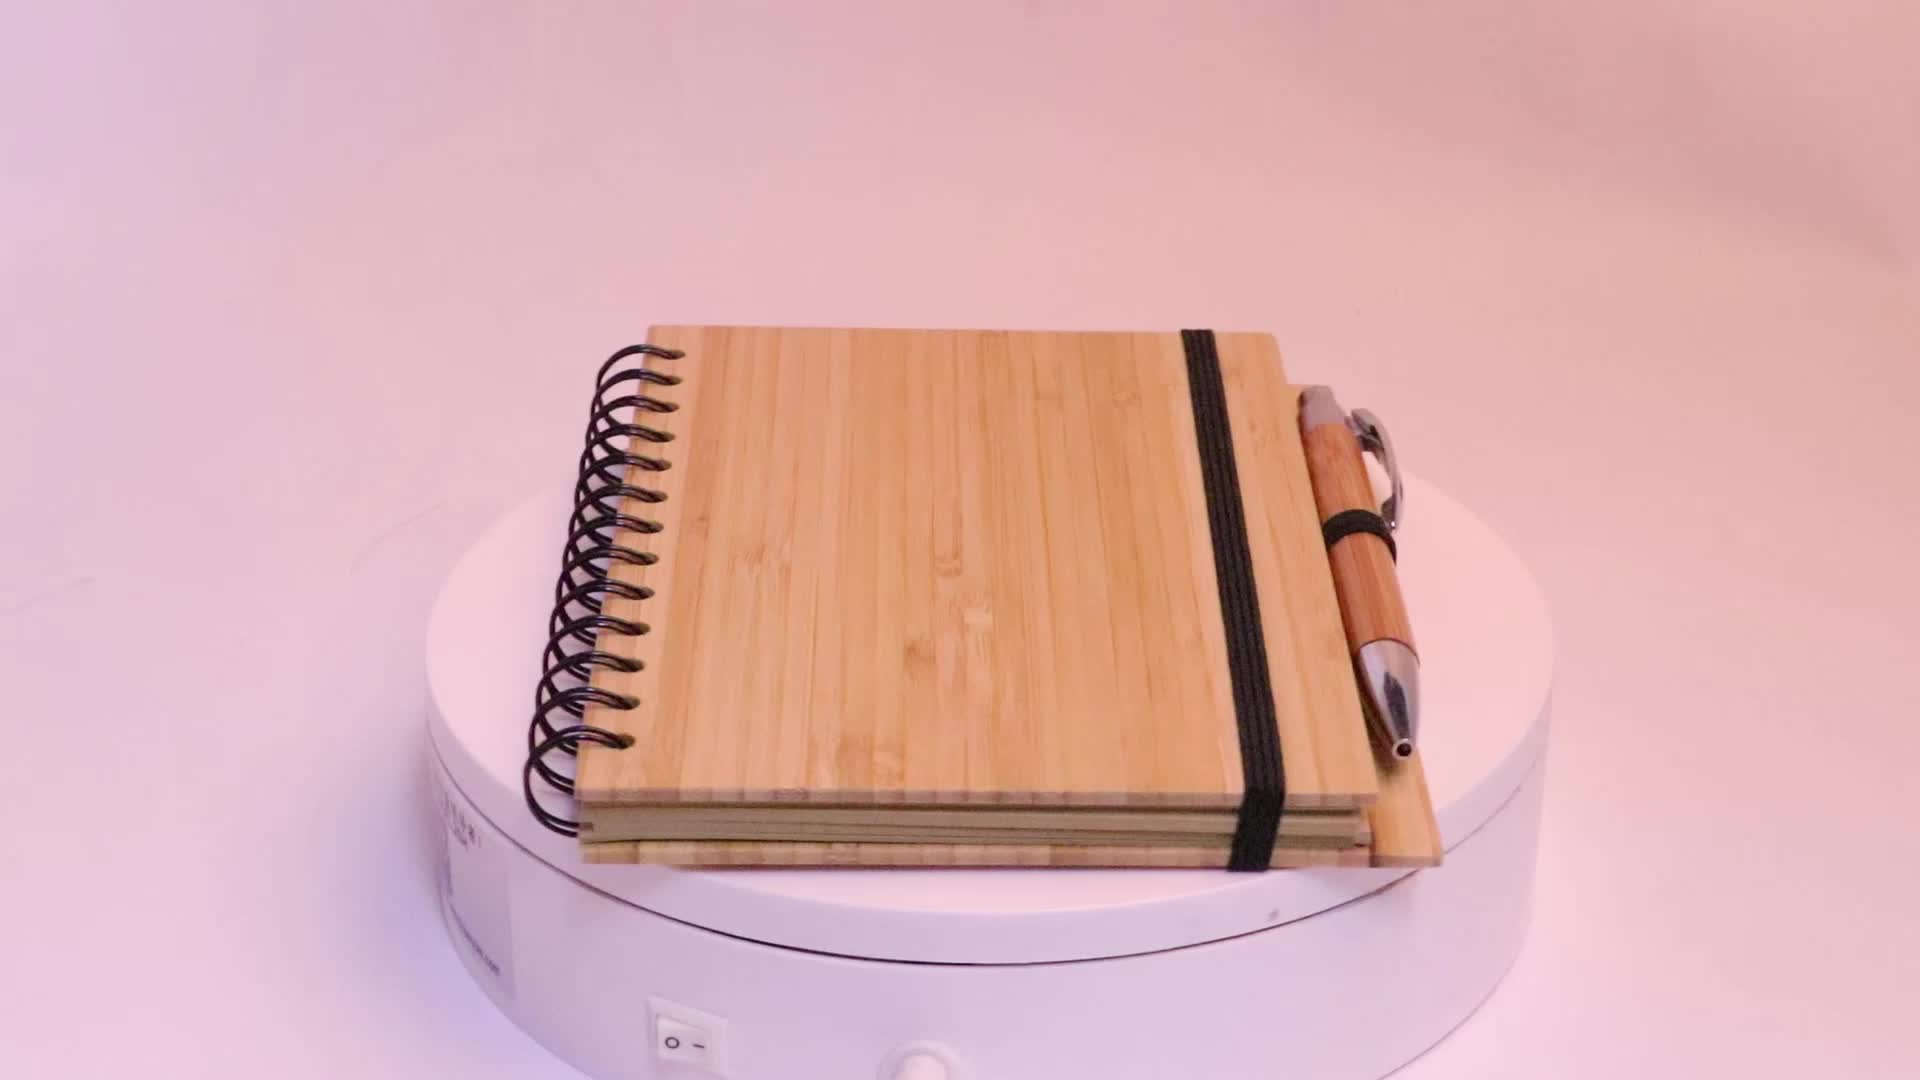 Unionpromo customized recycled bamboo cover notebook and pen gift set